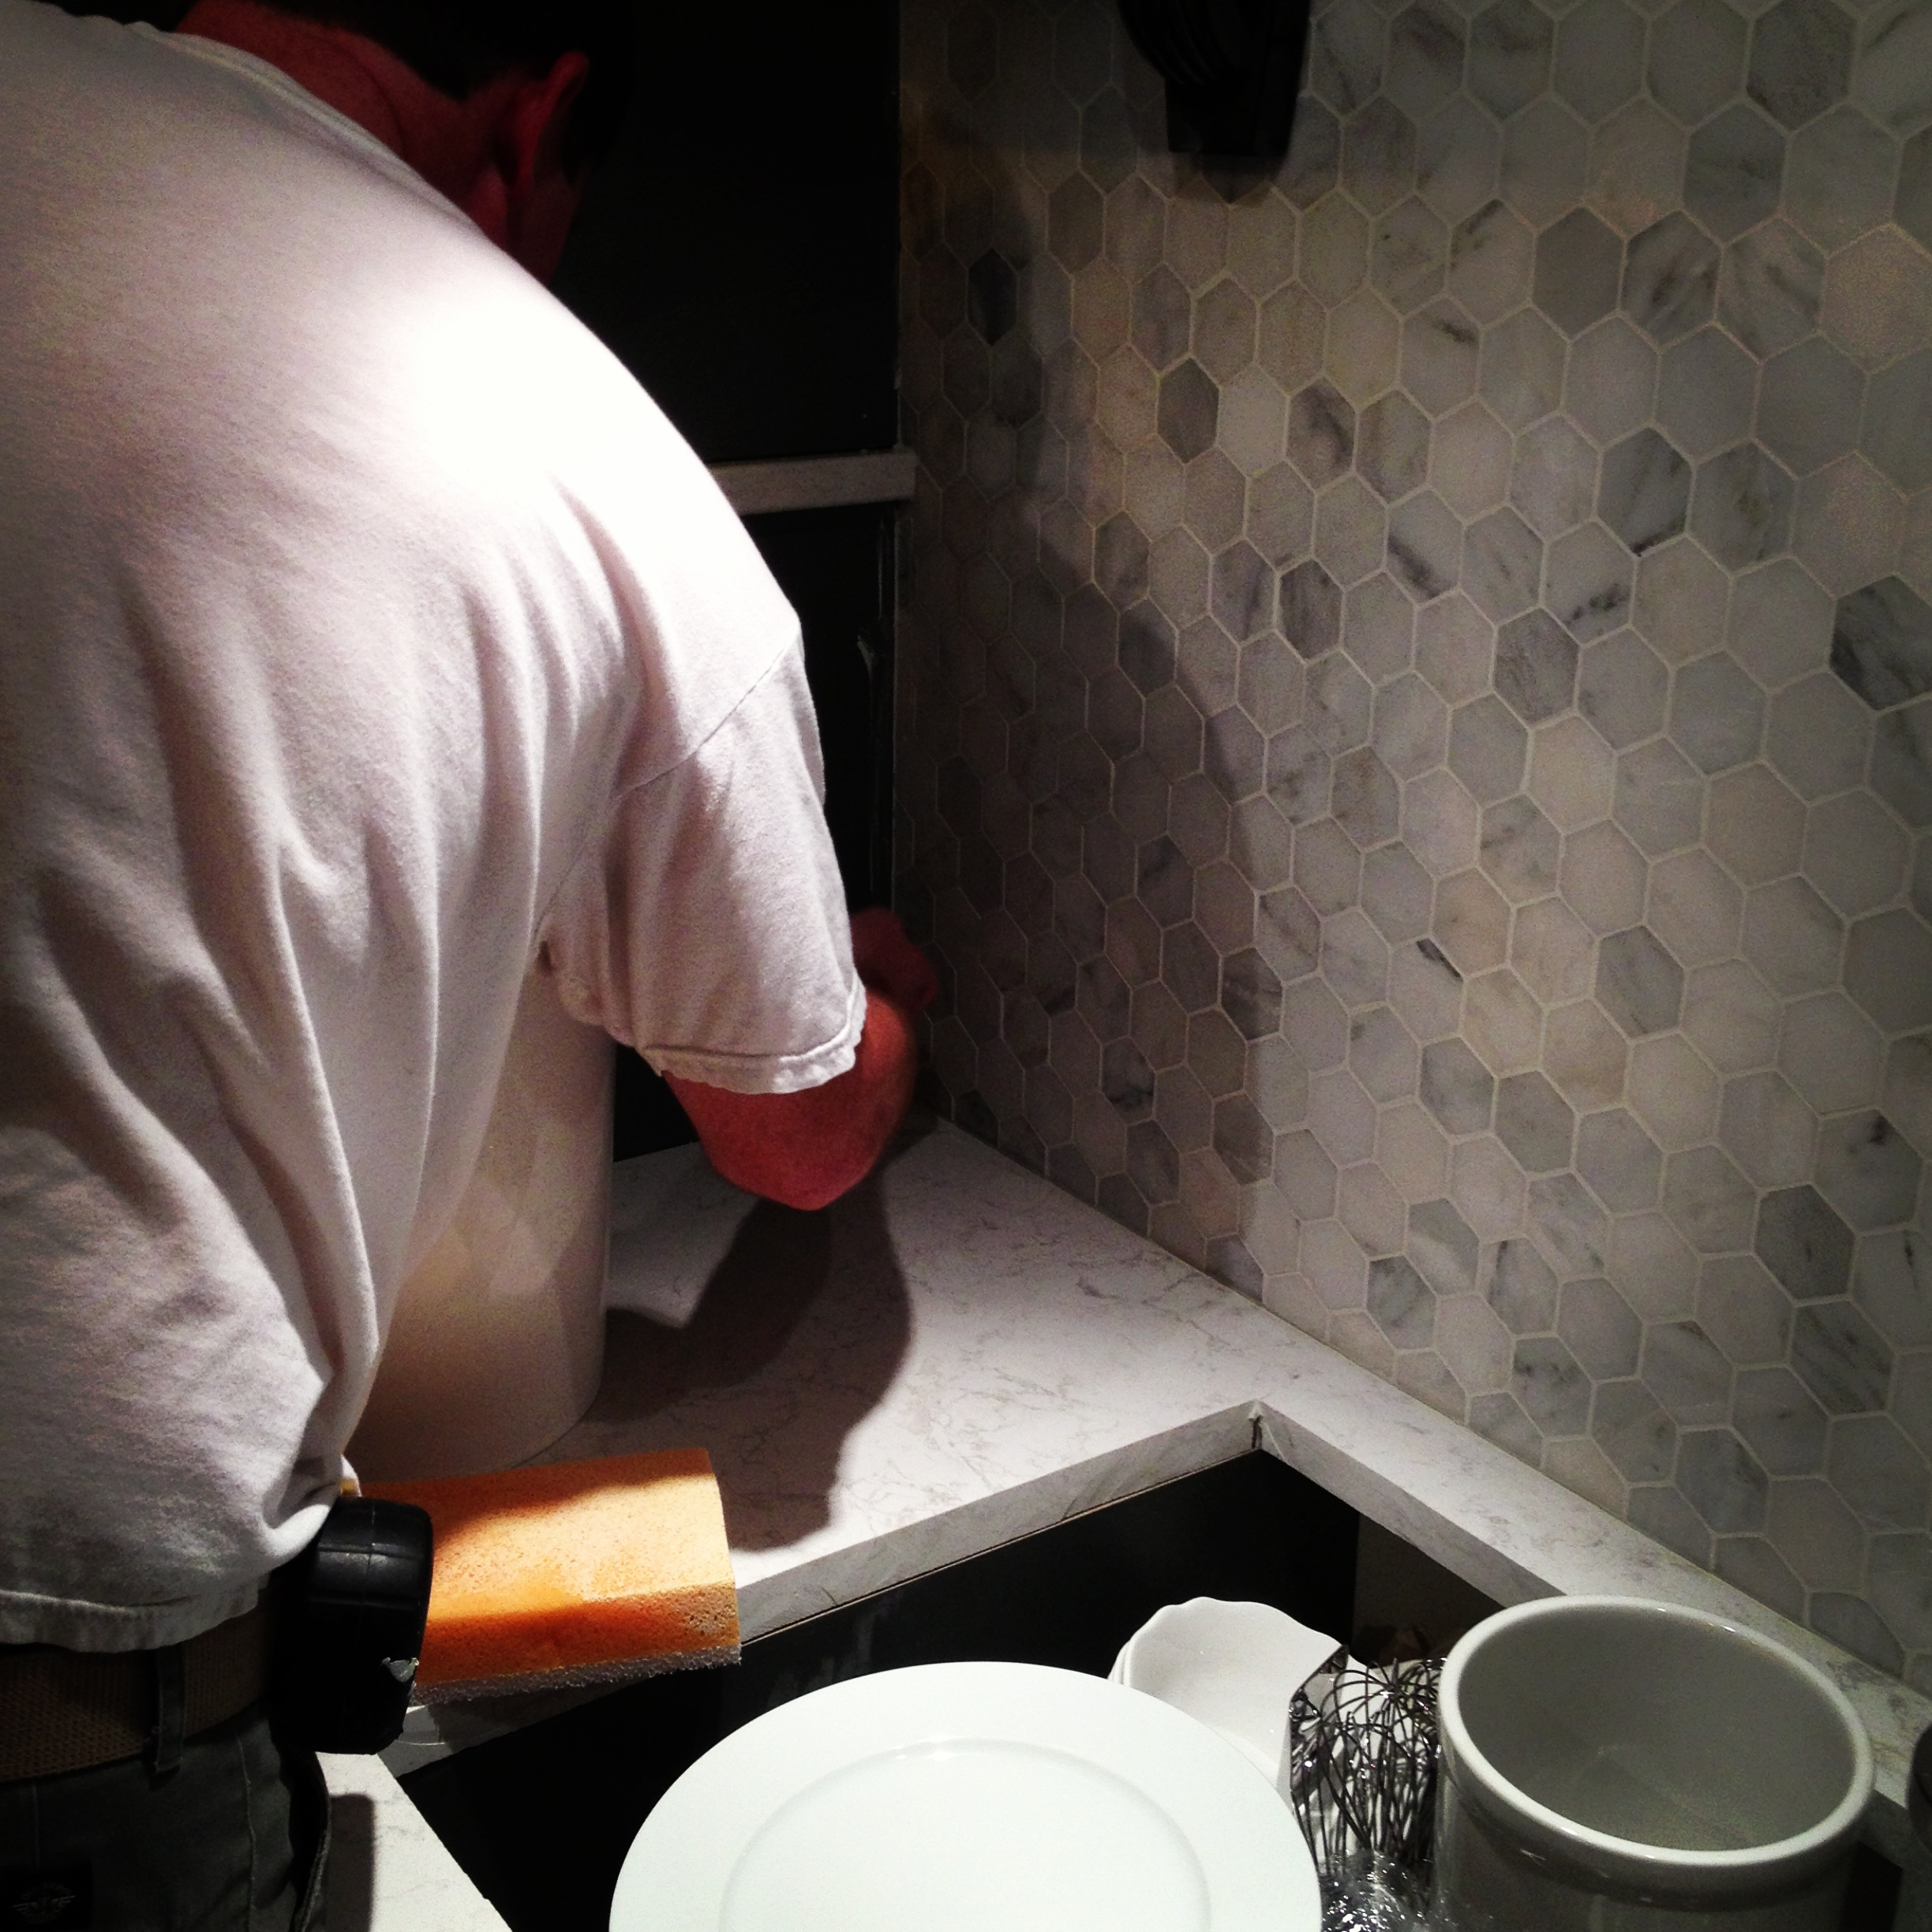 Tim hard at work grouting after the displays arrive at the show